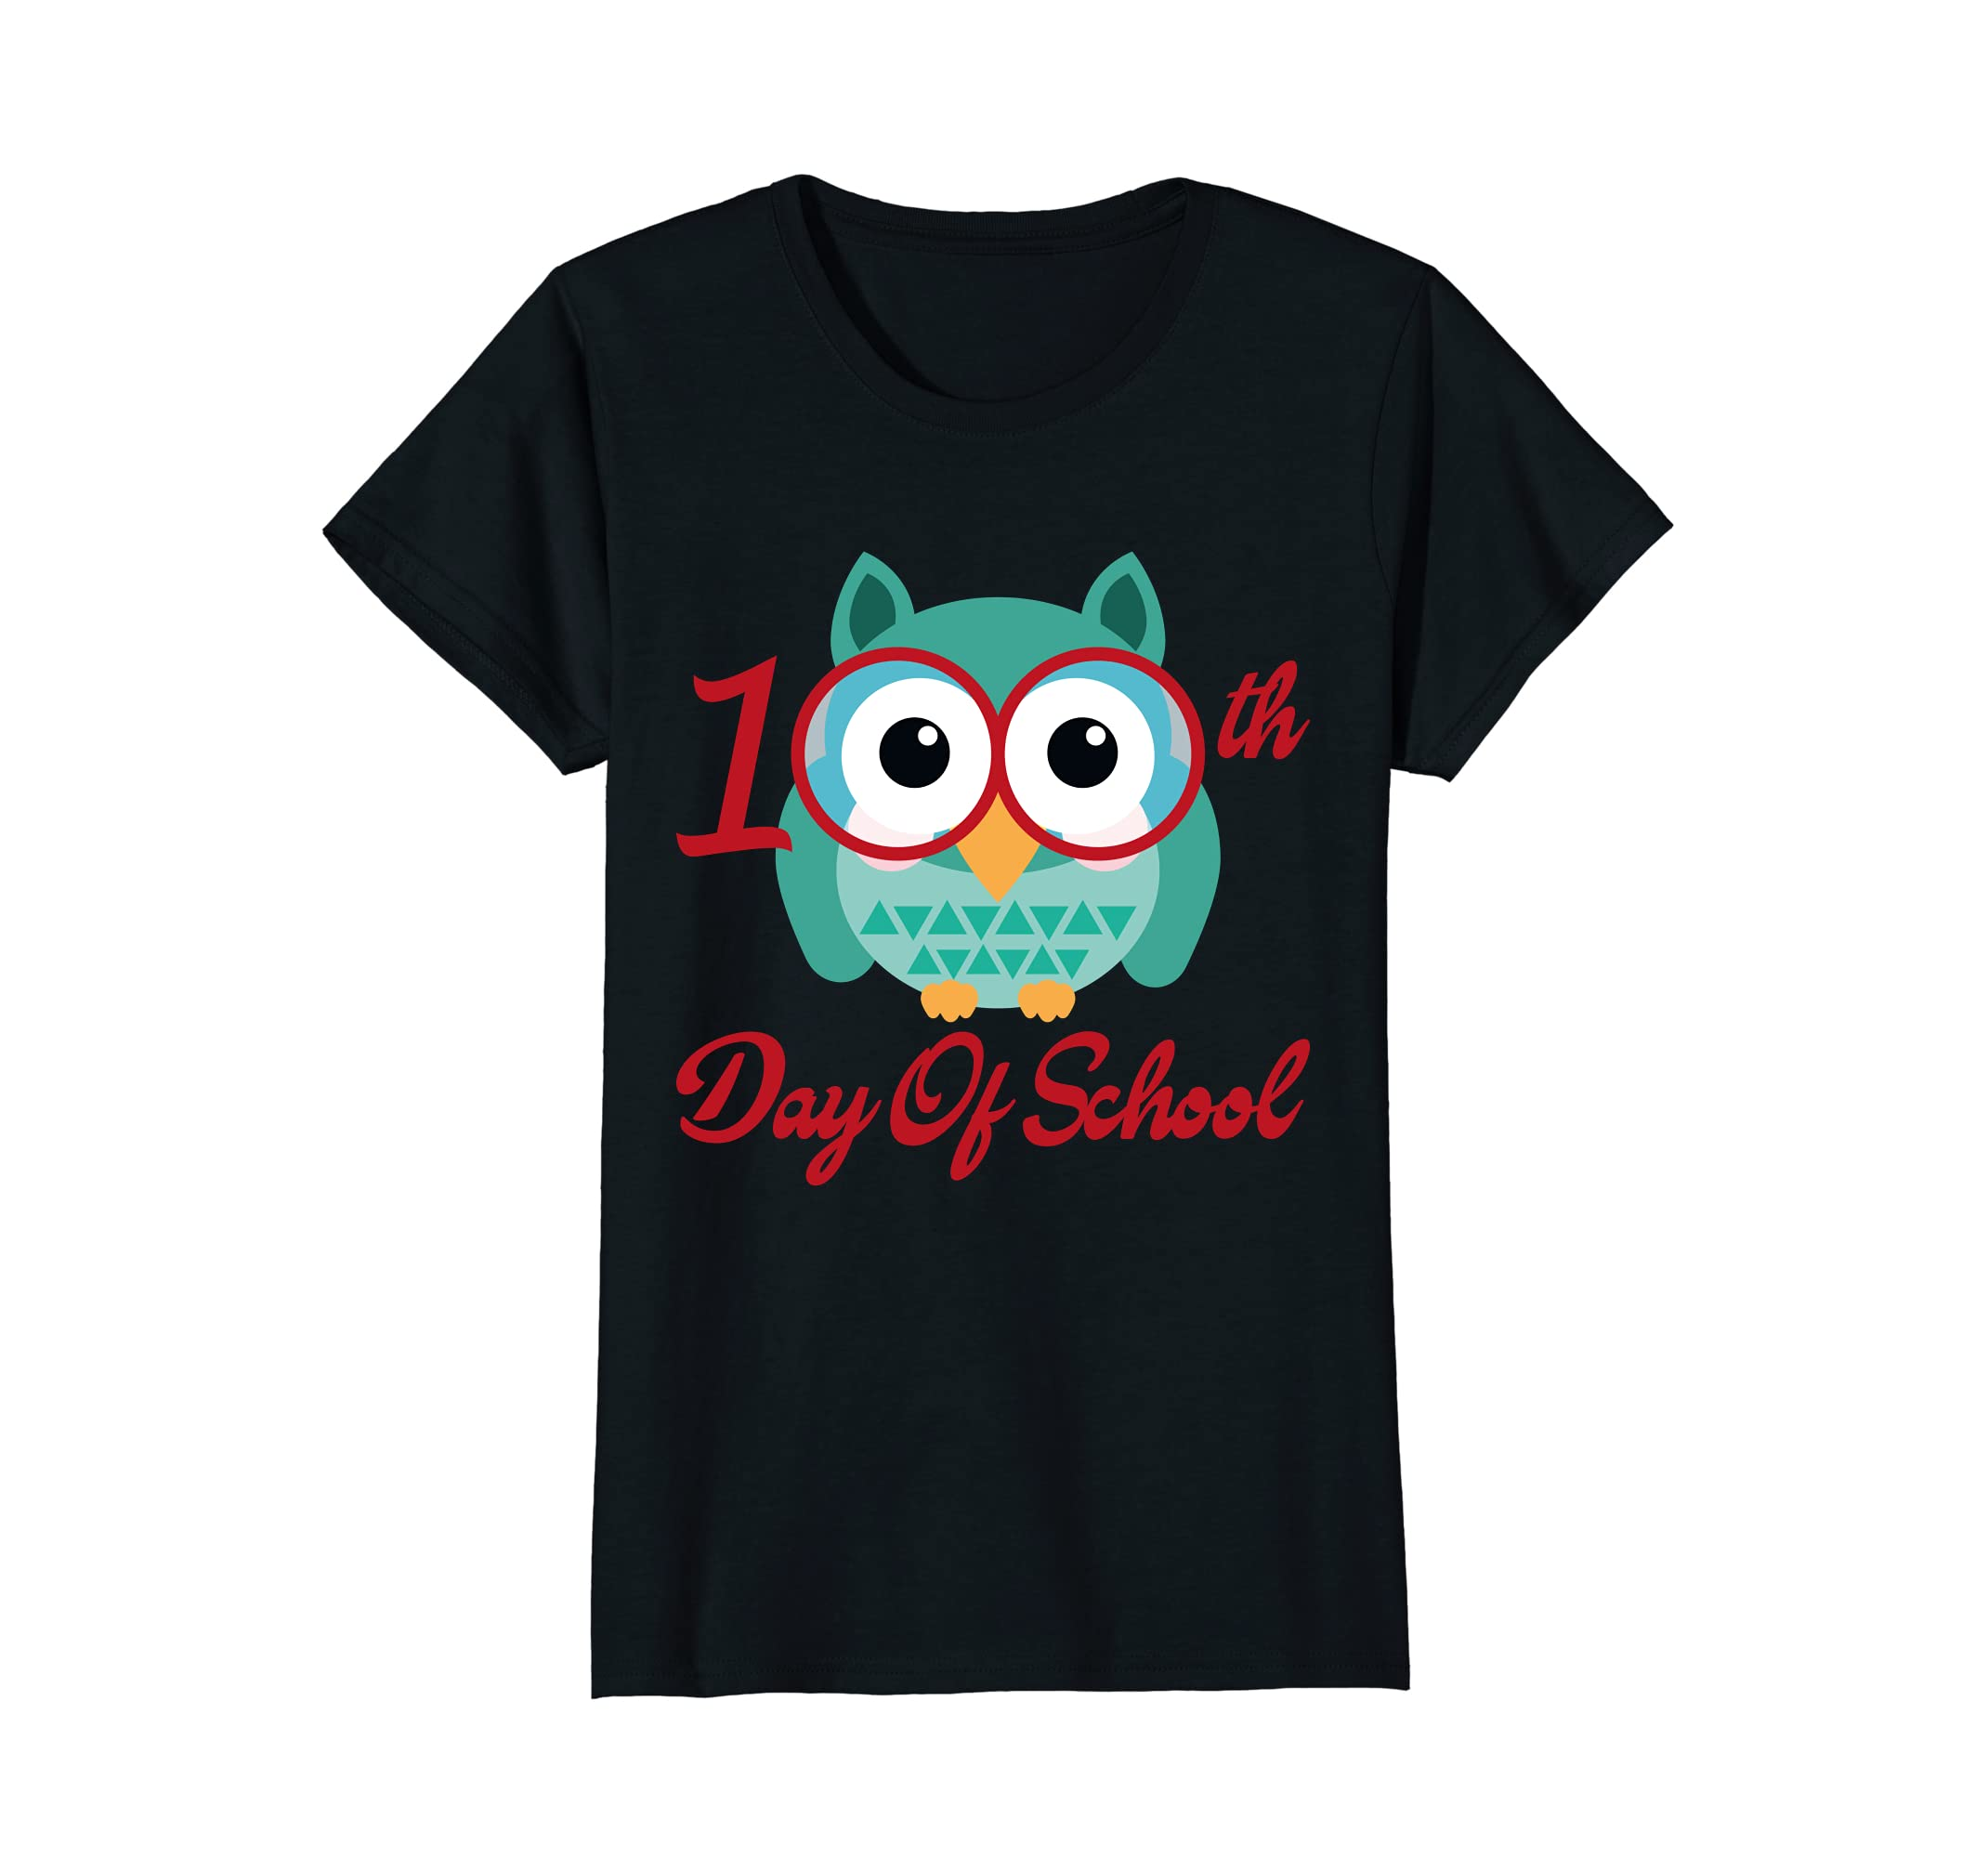 100th Day Of School T-shirt Cute Owl Tee